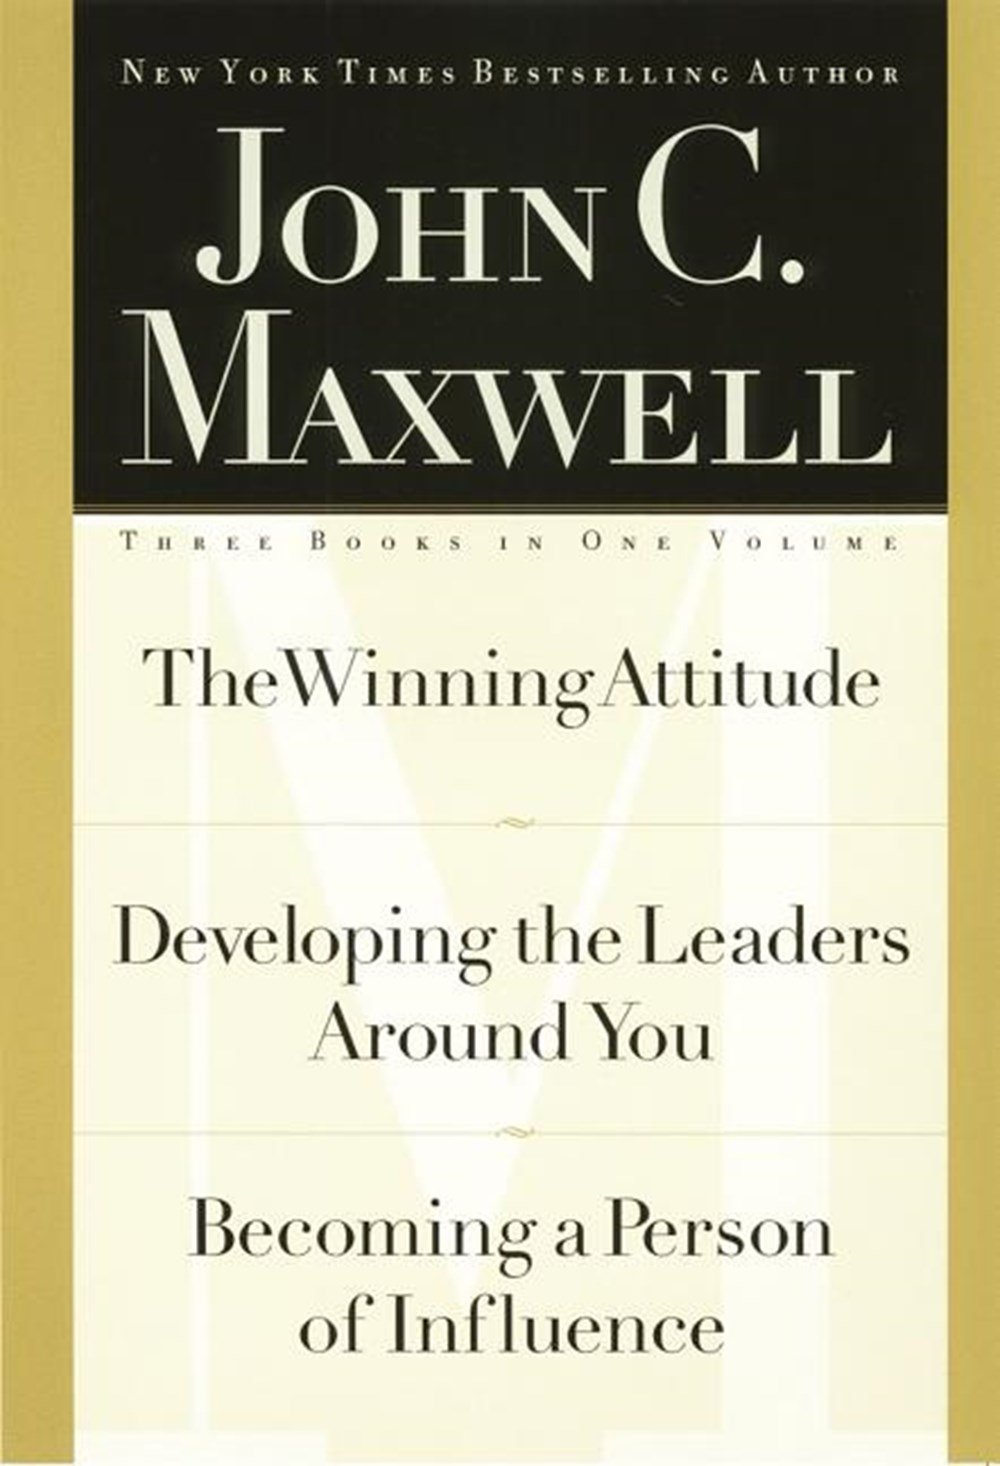 John C. Maxwell, Three Books in One Volume The Winning Attitude/Developing the Leaders Around You/Be